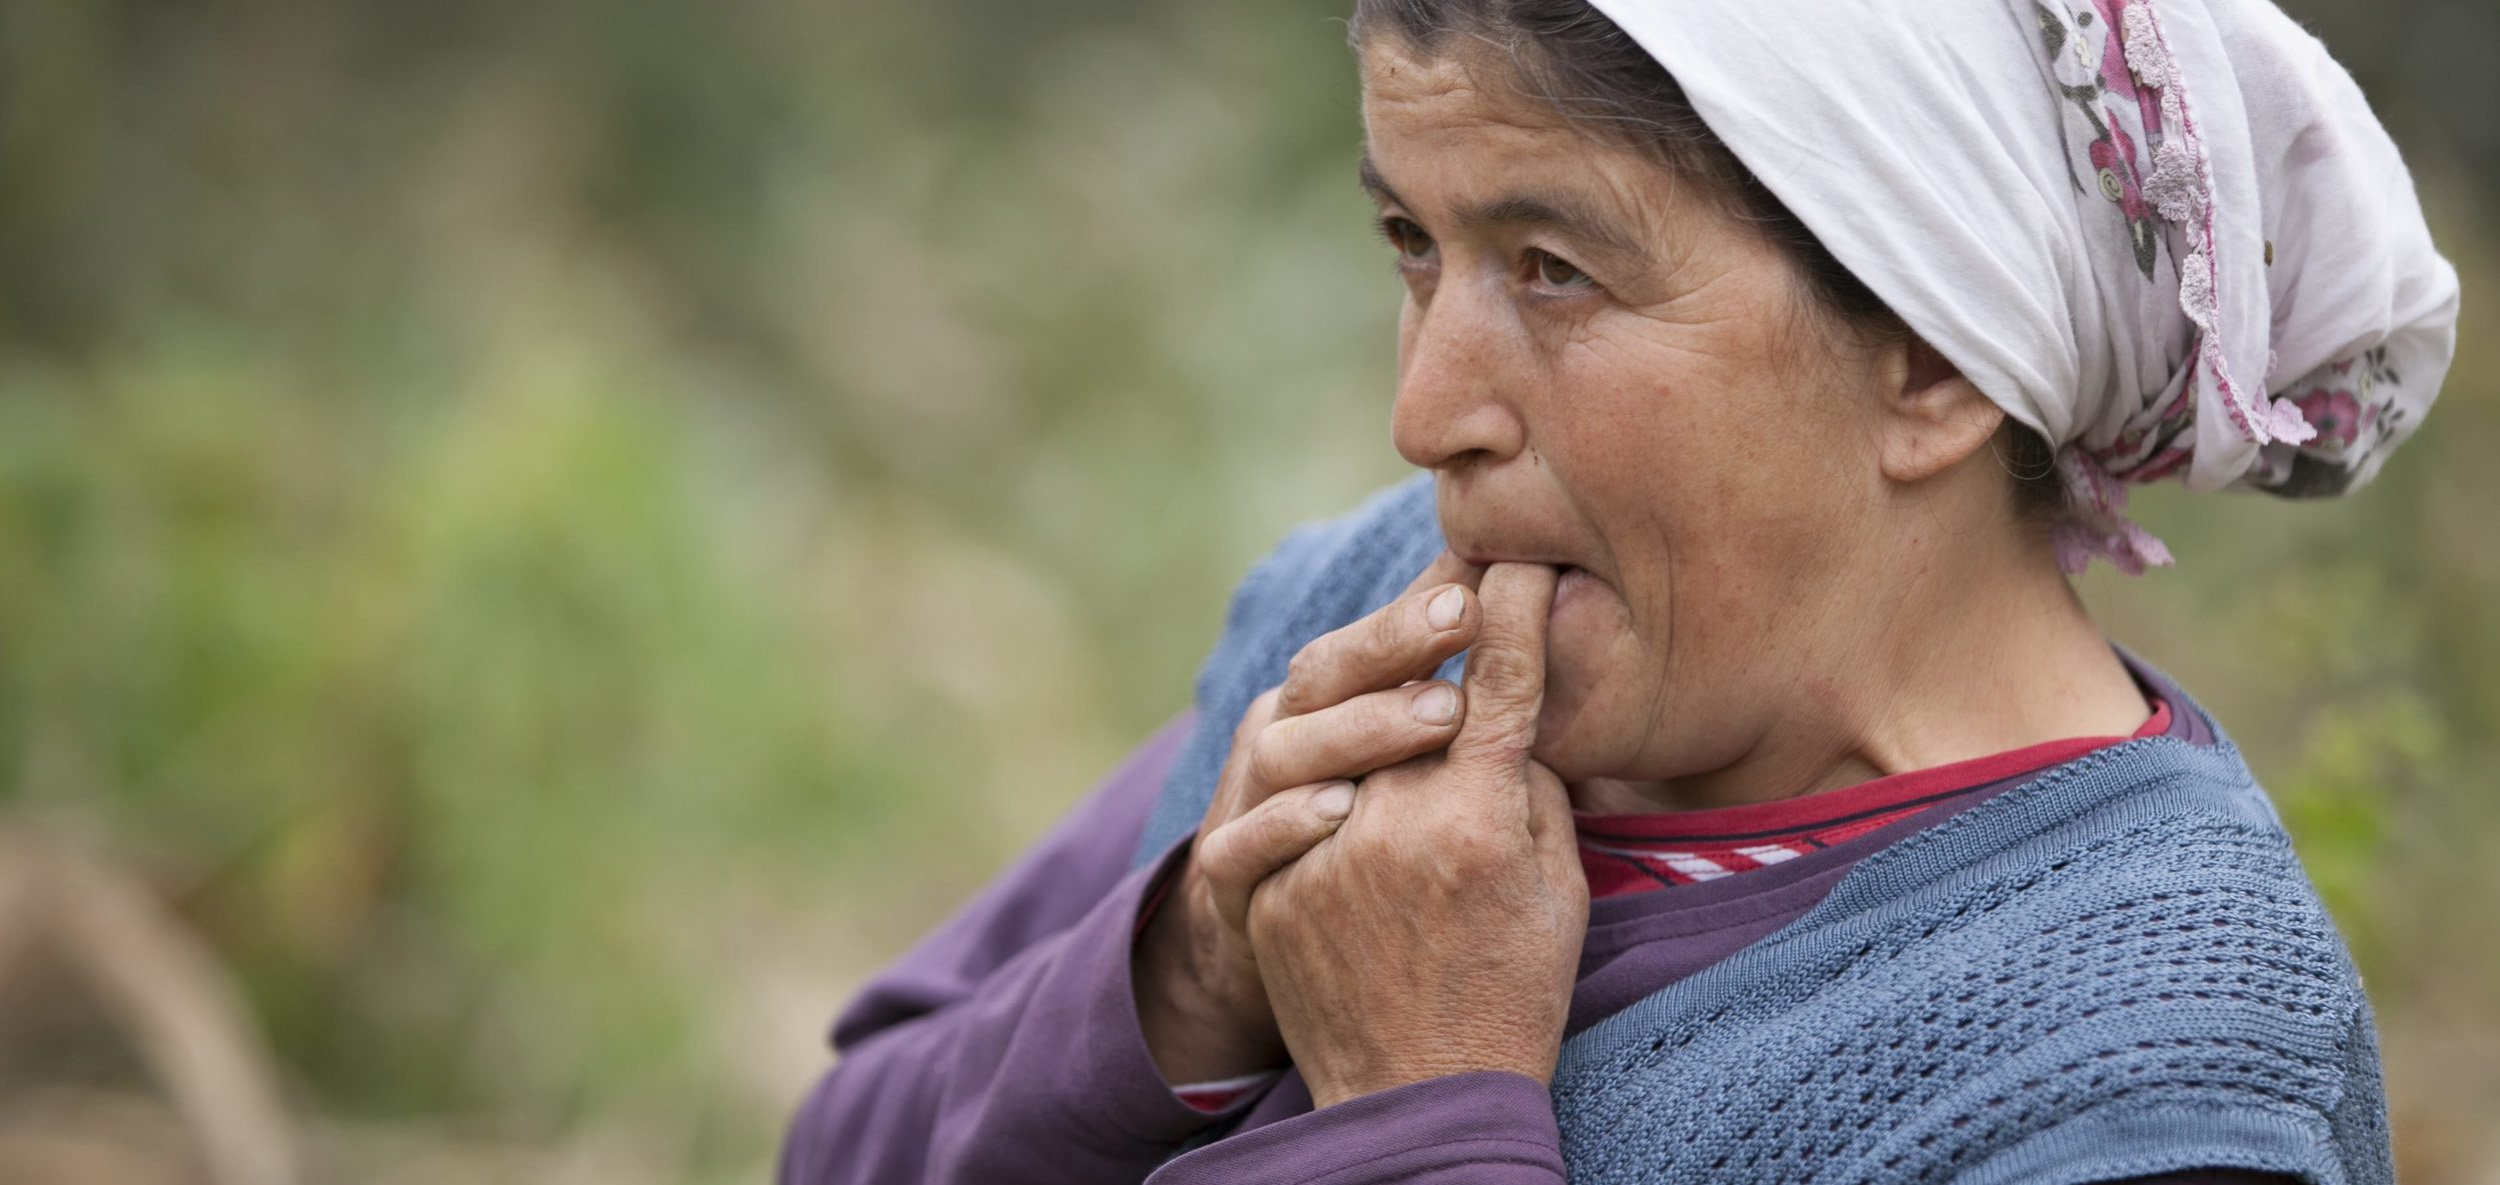 A woman in the Turkish village of Kuskoy whistling - The Calling - Angelica Mesiti - Hero image.jpg